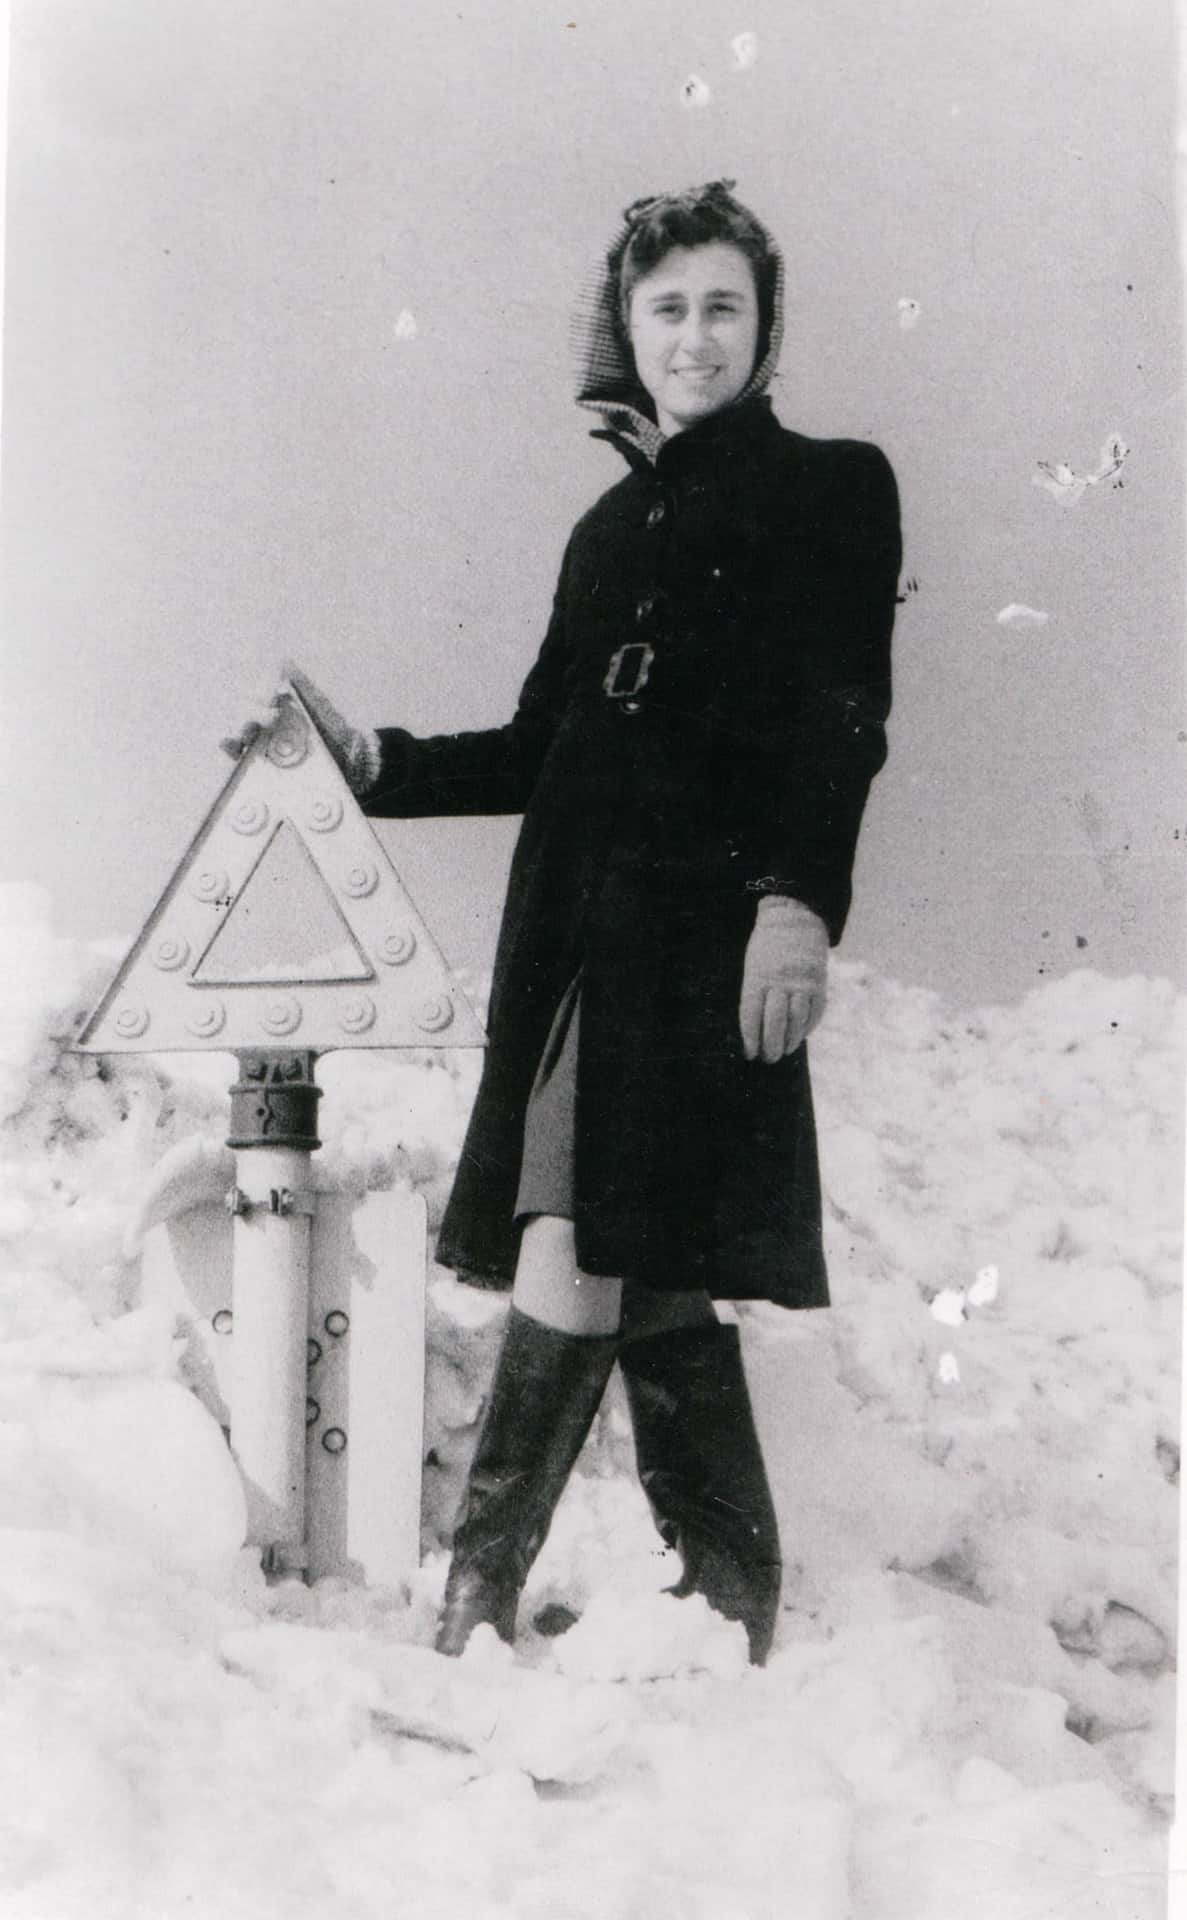 Mary Waters standing on a snow drift on the Birmingham New Road in 1947.